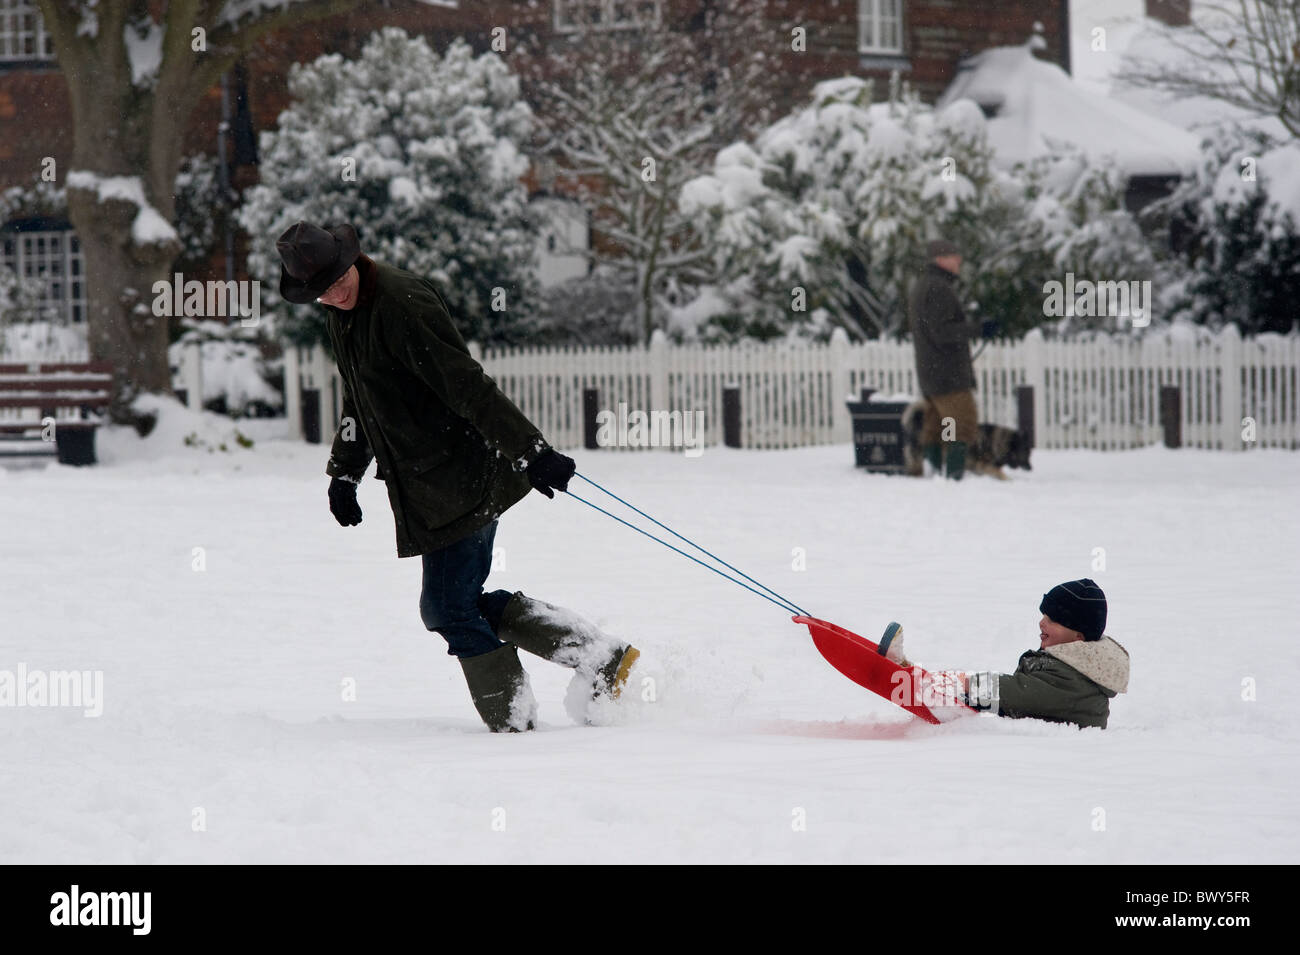 Father playing with son in snow as England is hit by the worst storm in decades. Time to catch up on important family - Stock Image